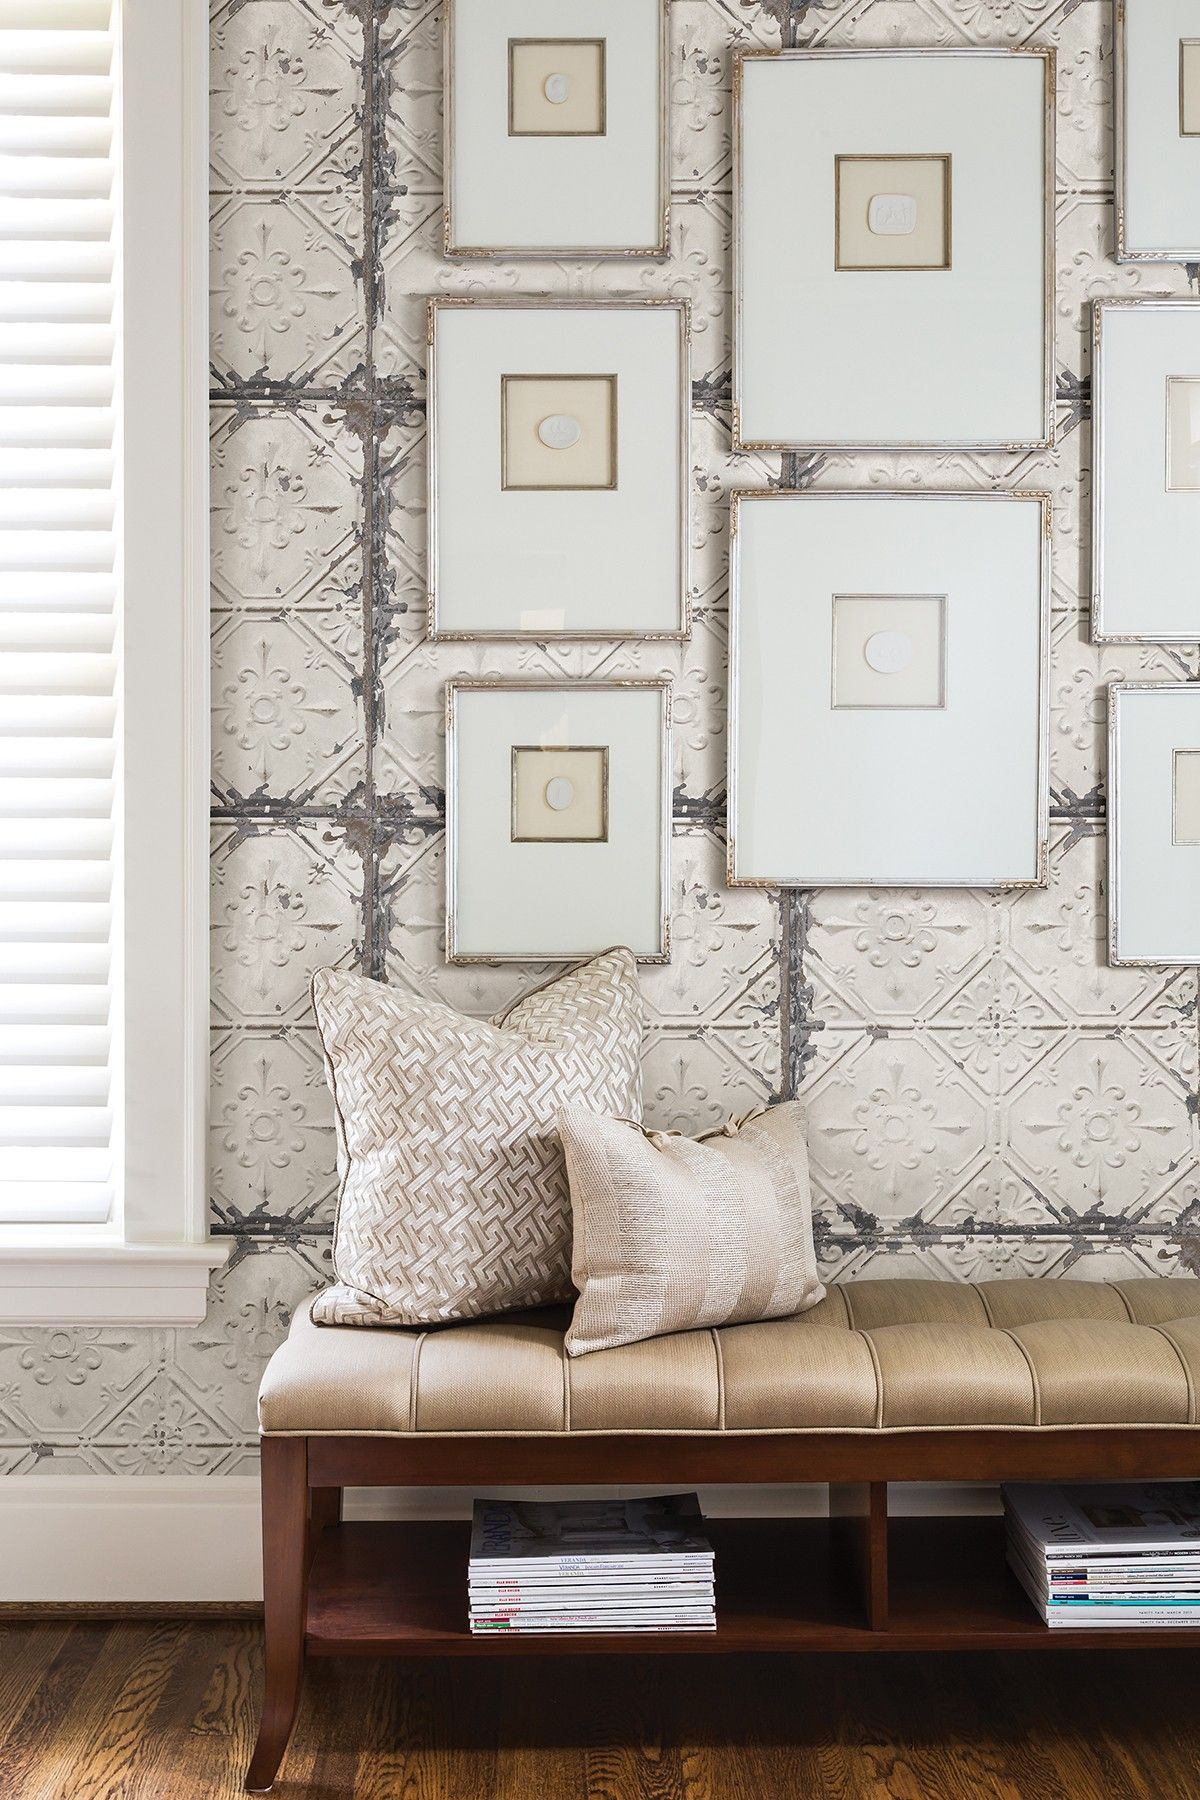 Vintage Tin Tile Peel And Stick Wallpaper By Brewster Home Fashions On @ HauteLook